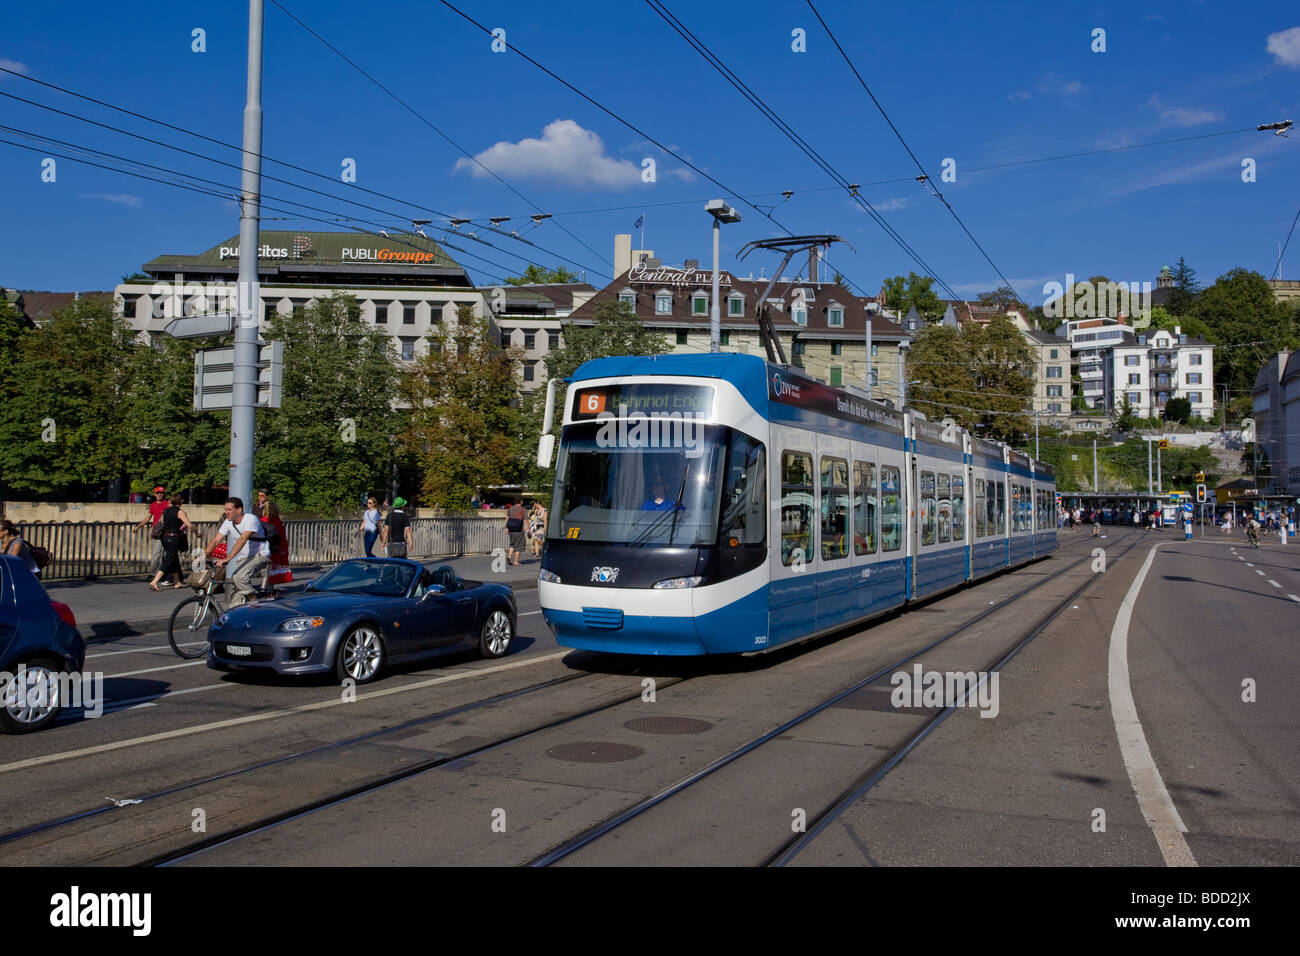 Modern Zurich Tram on the street, Switzerland - Stock Image